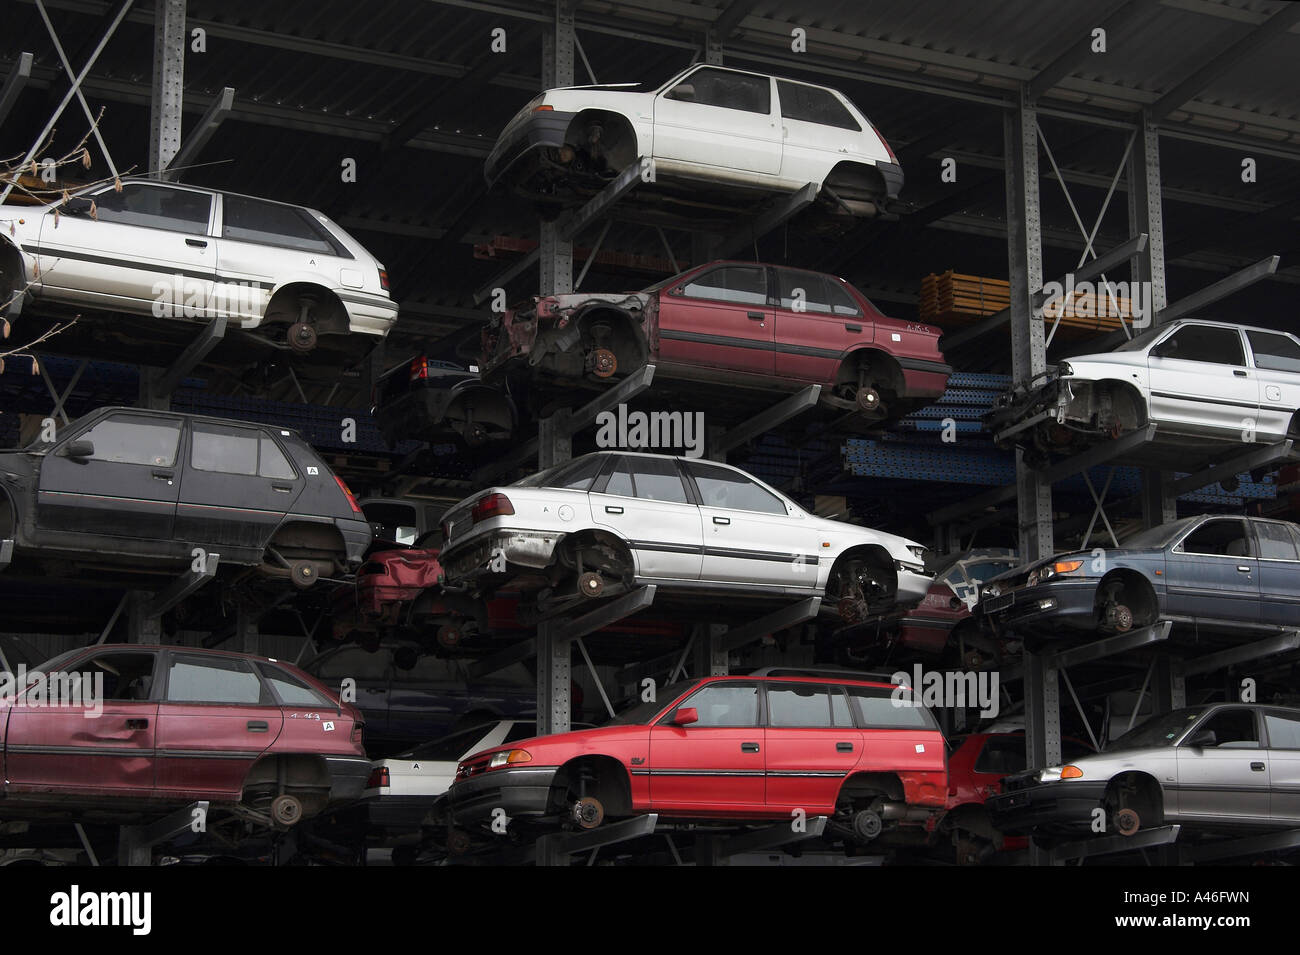 Cars at a scrap yard, Berlin, Germany Stock Photo: 10949984 - Alamy